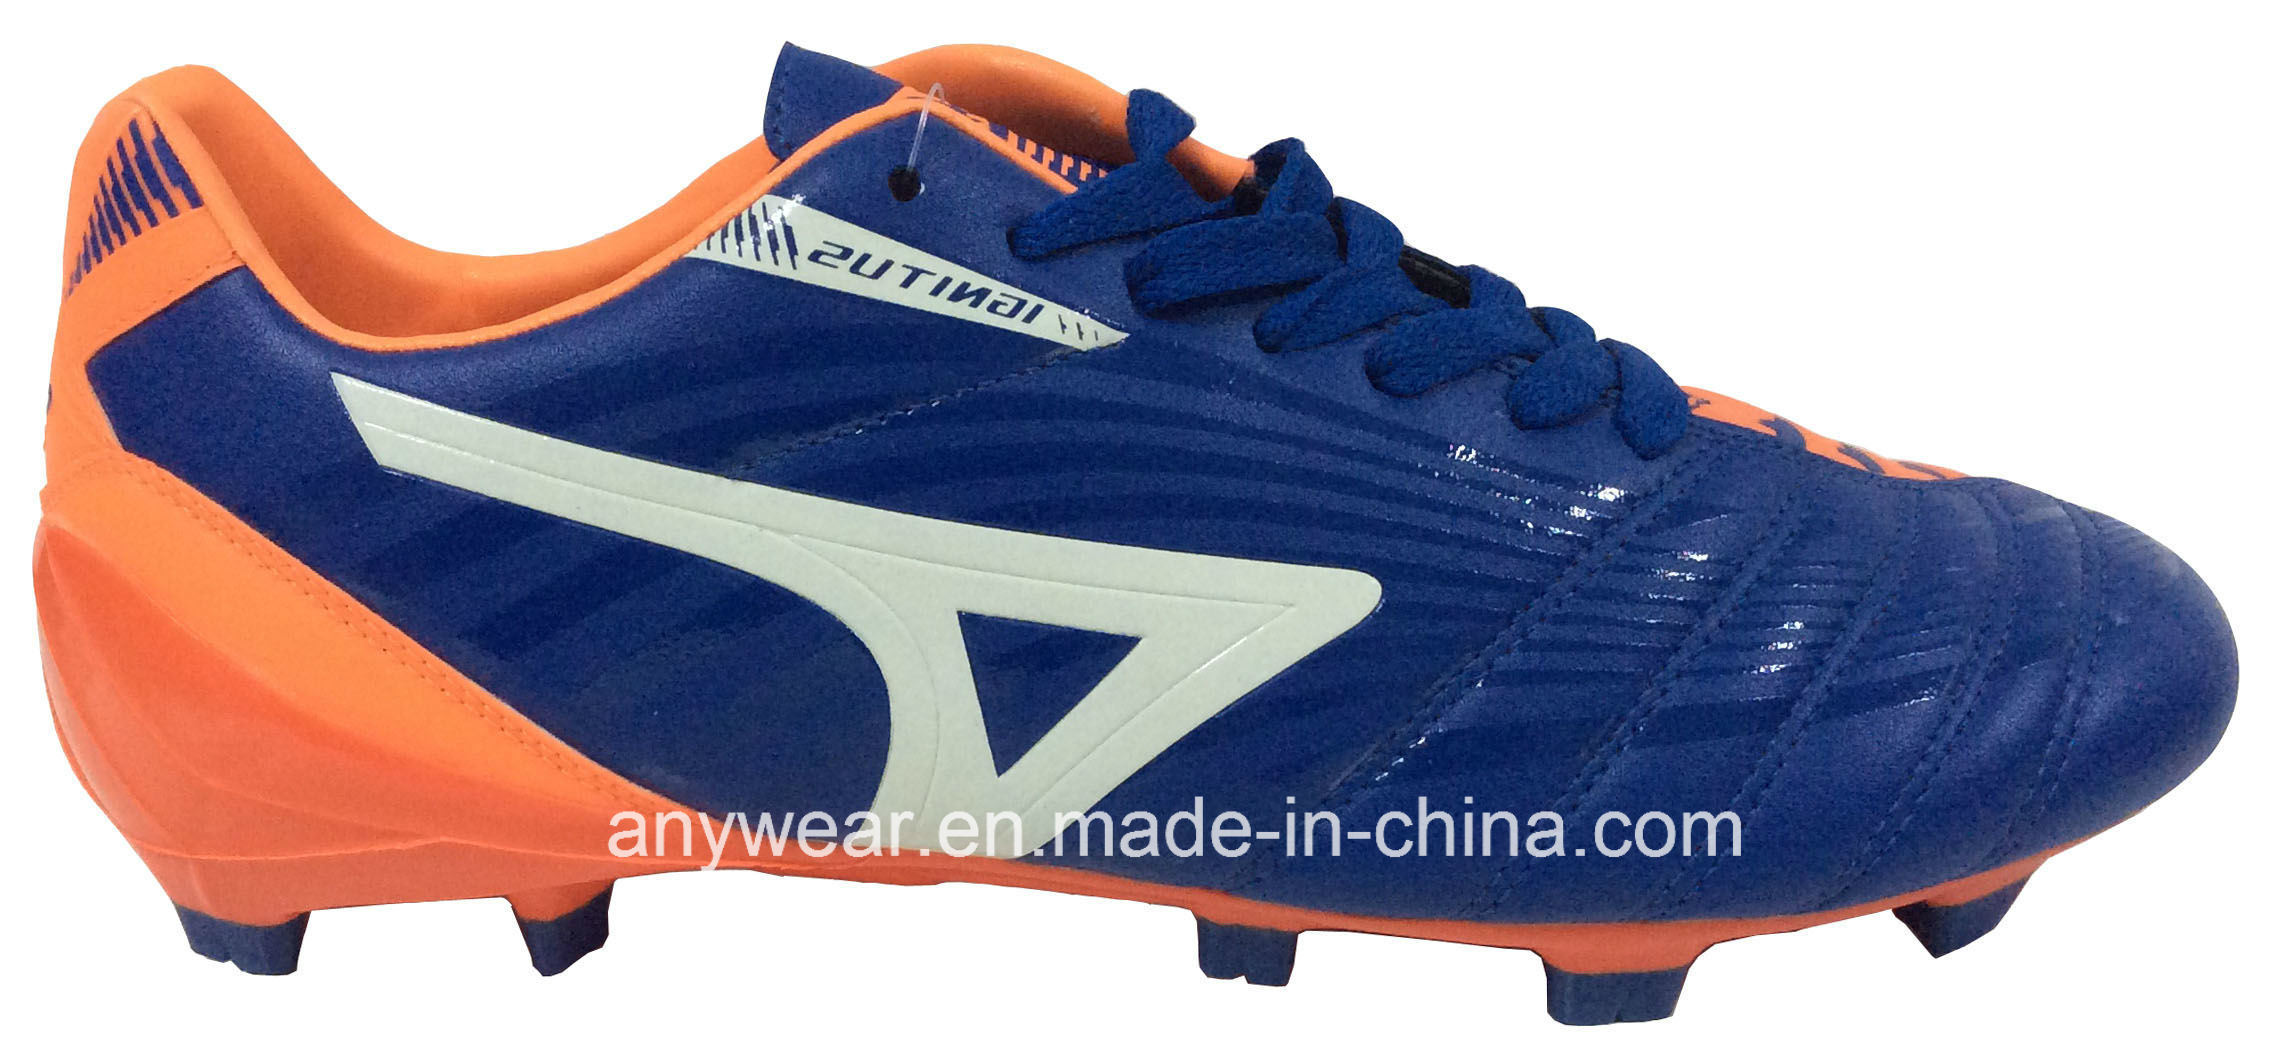 bb8d1db0c China Men Outdoor Sports Football Boots Soccer Shoes (815-9461) - China  Soccer Shoes